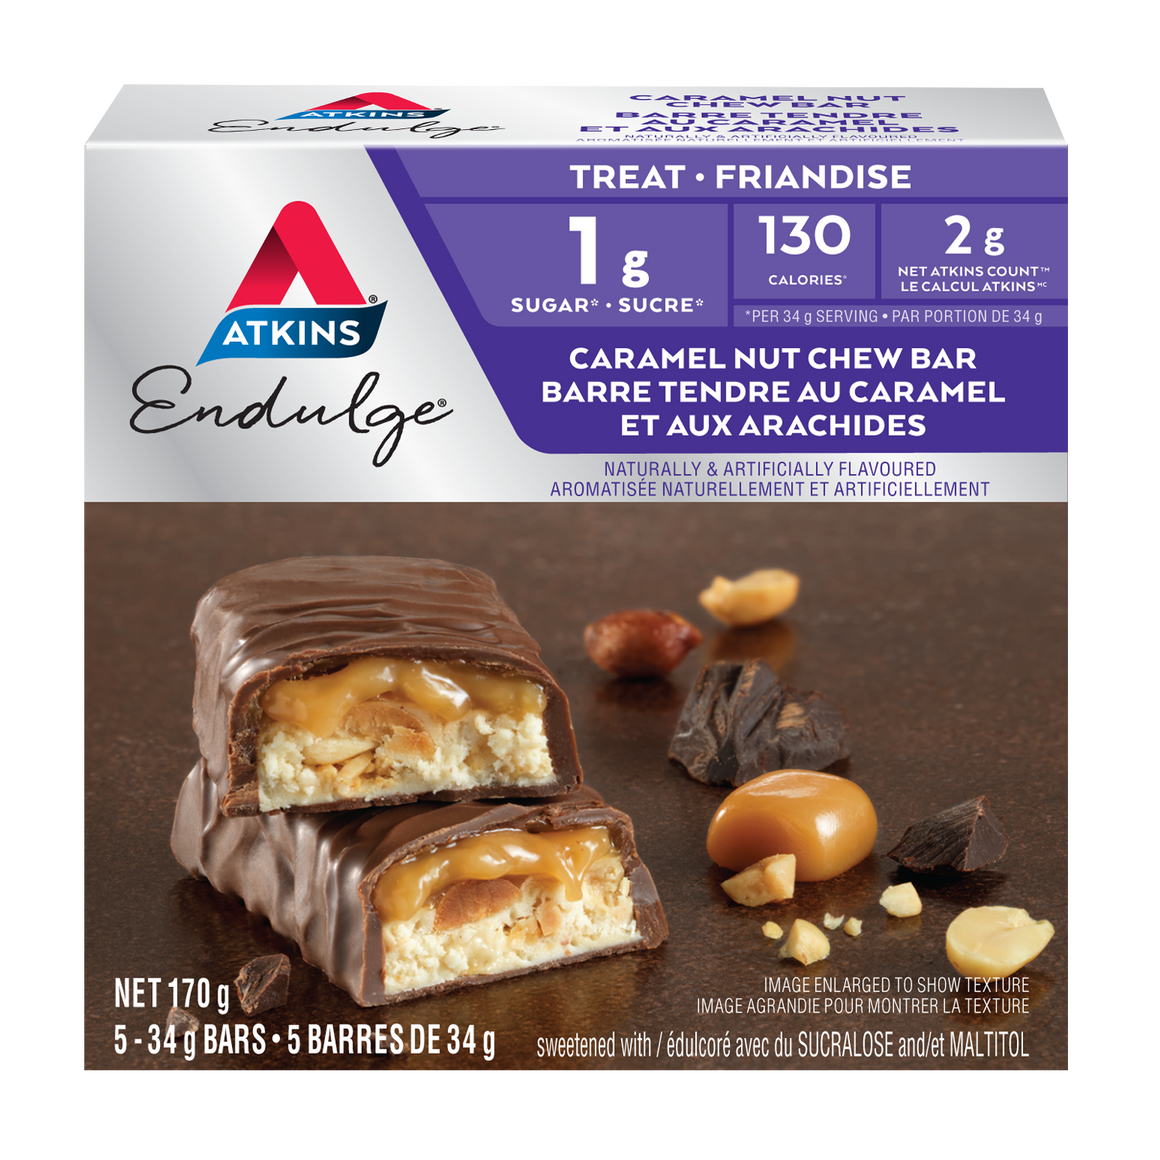 Atkins Endulge Treat - Caramel Nut Chew Bar - 5 Bars